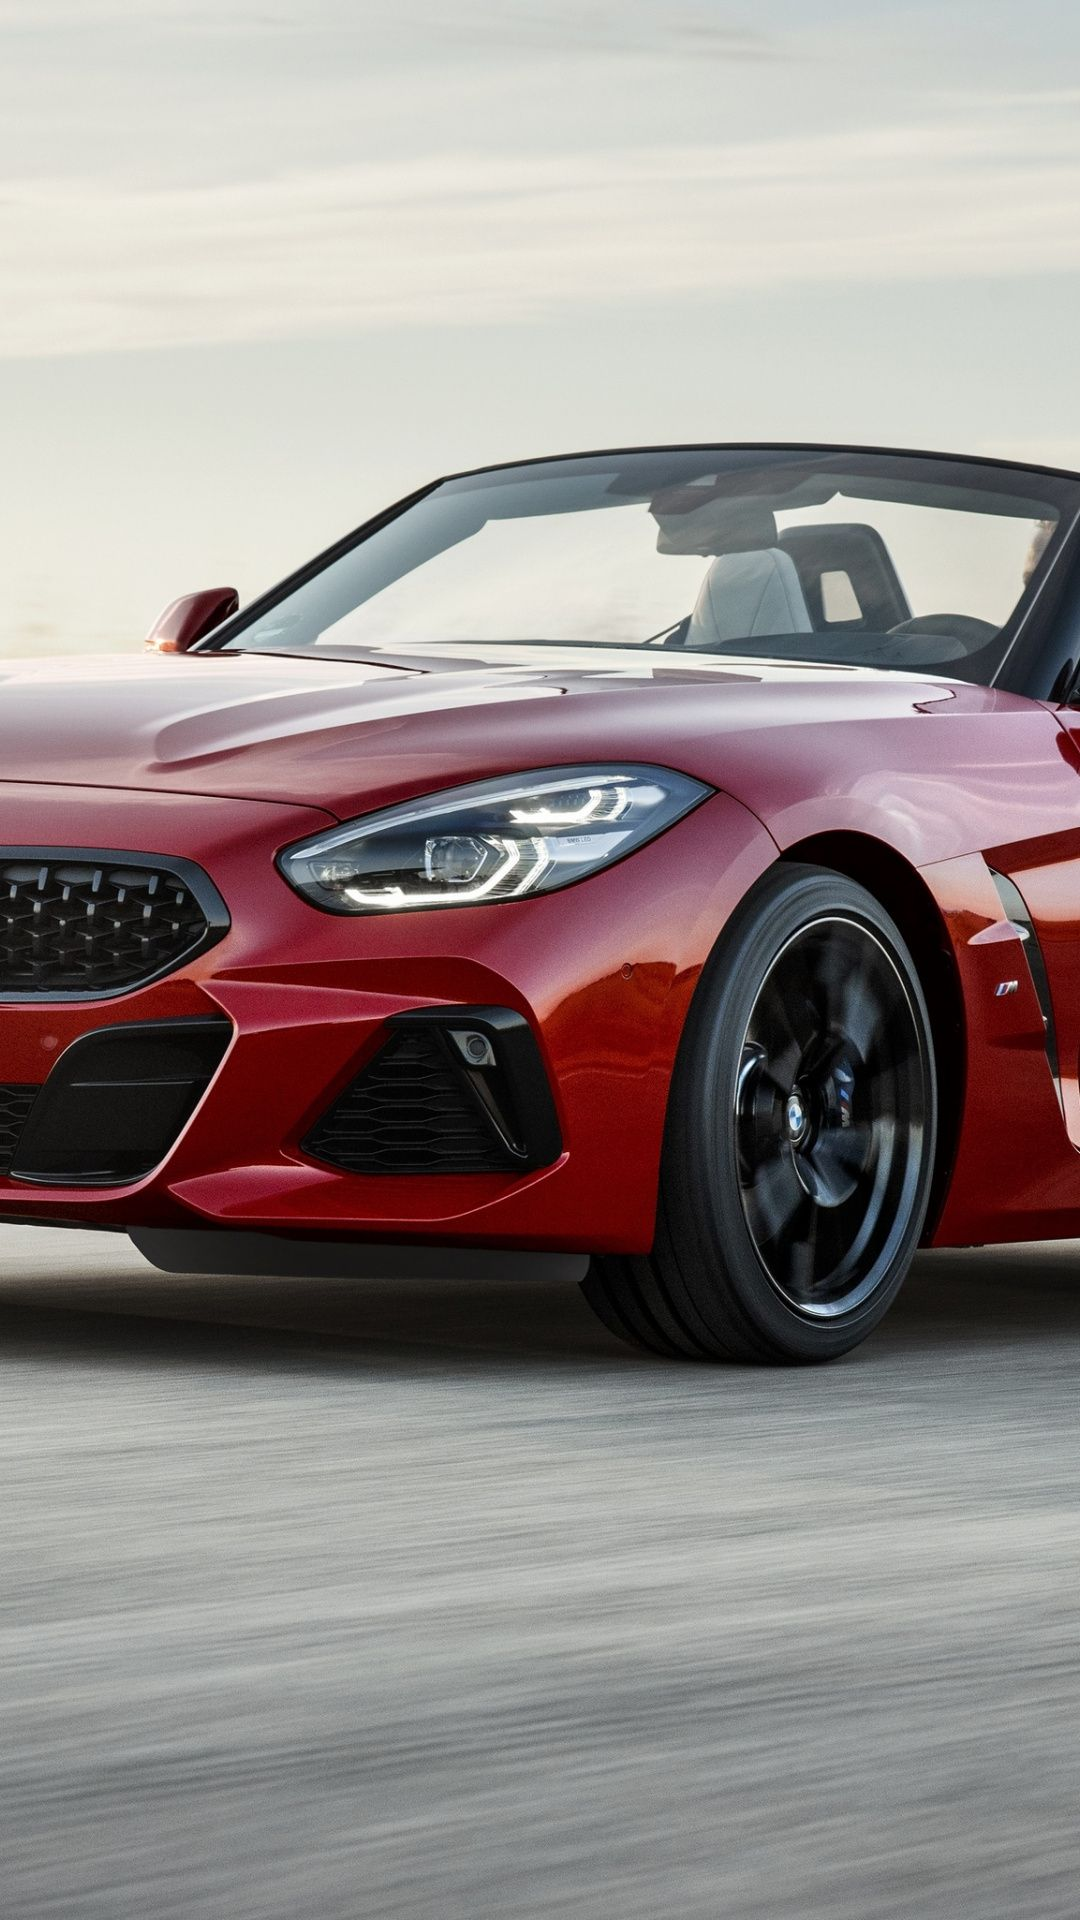 Red Convertible Car Bmw Z4 Wallpaper Bmw Z4 Convertible Samsung Galaxy S4